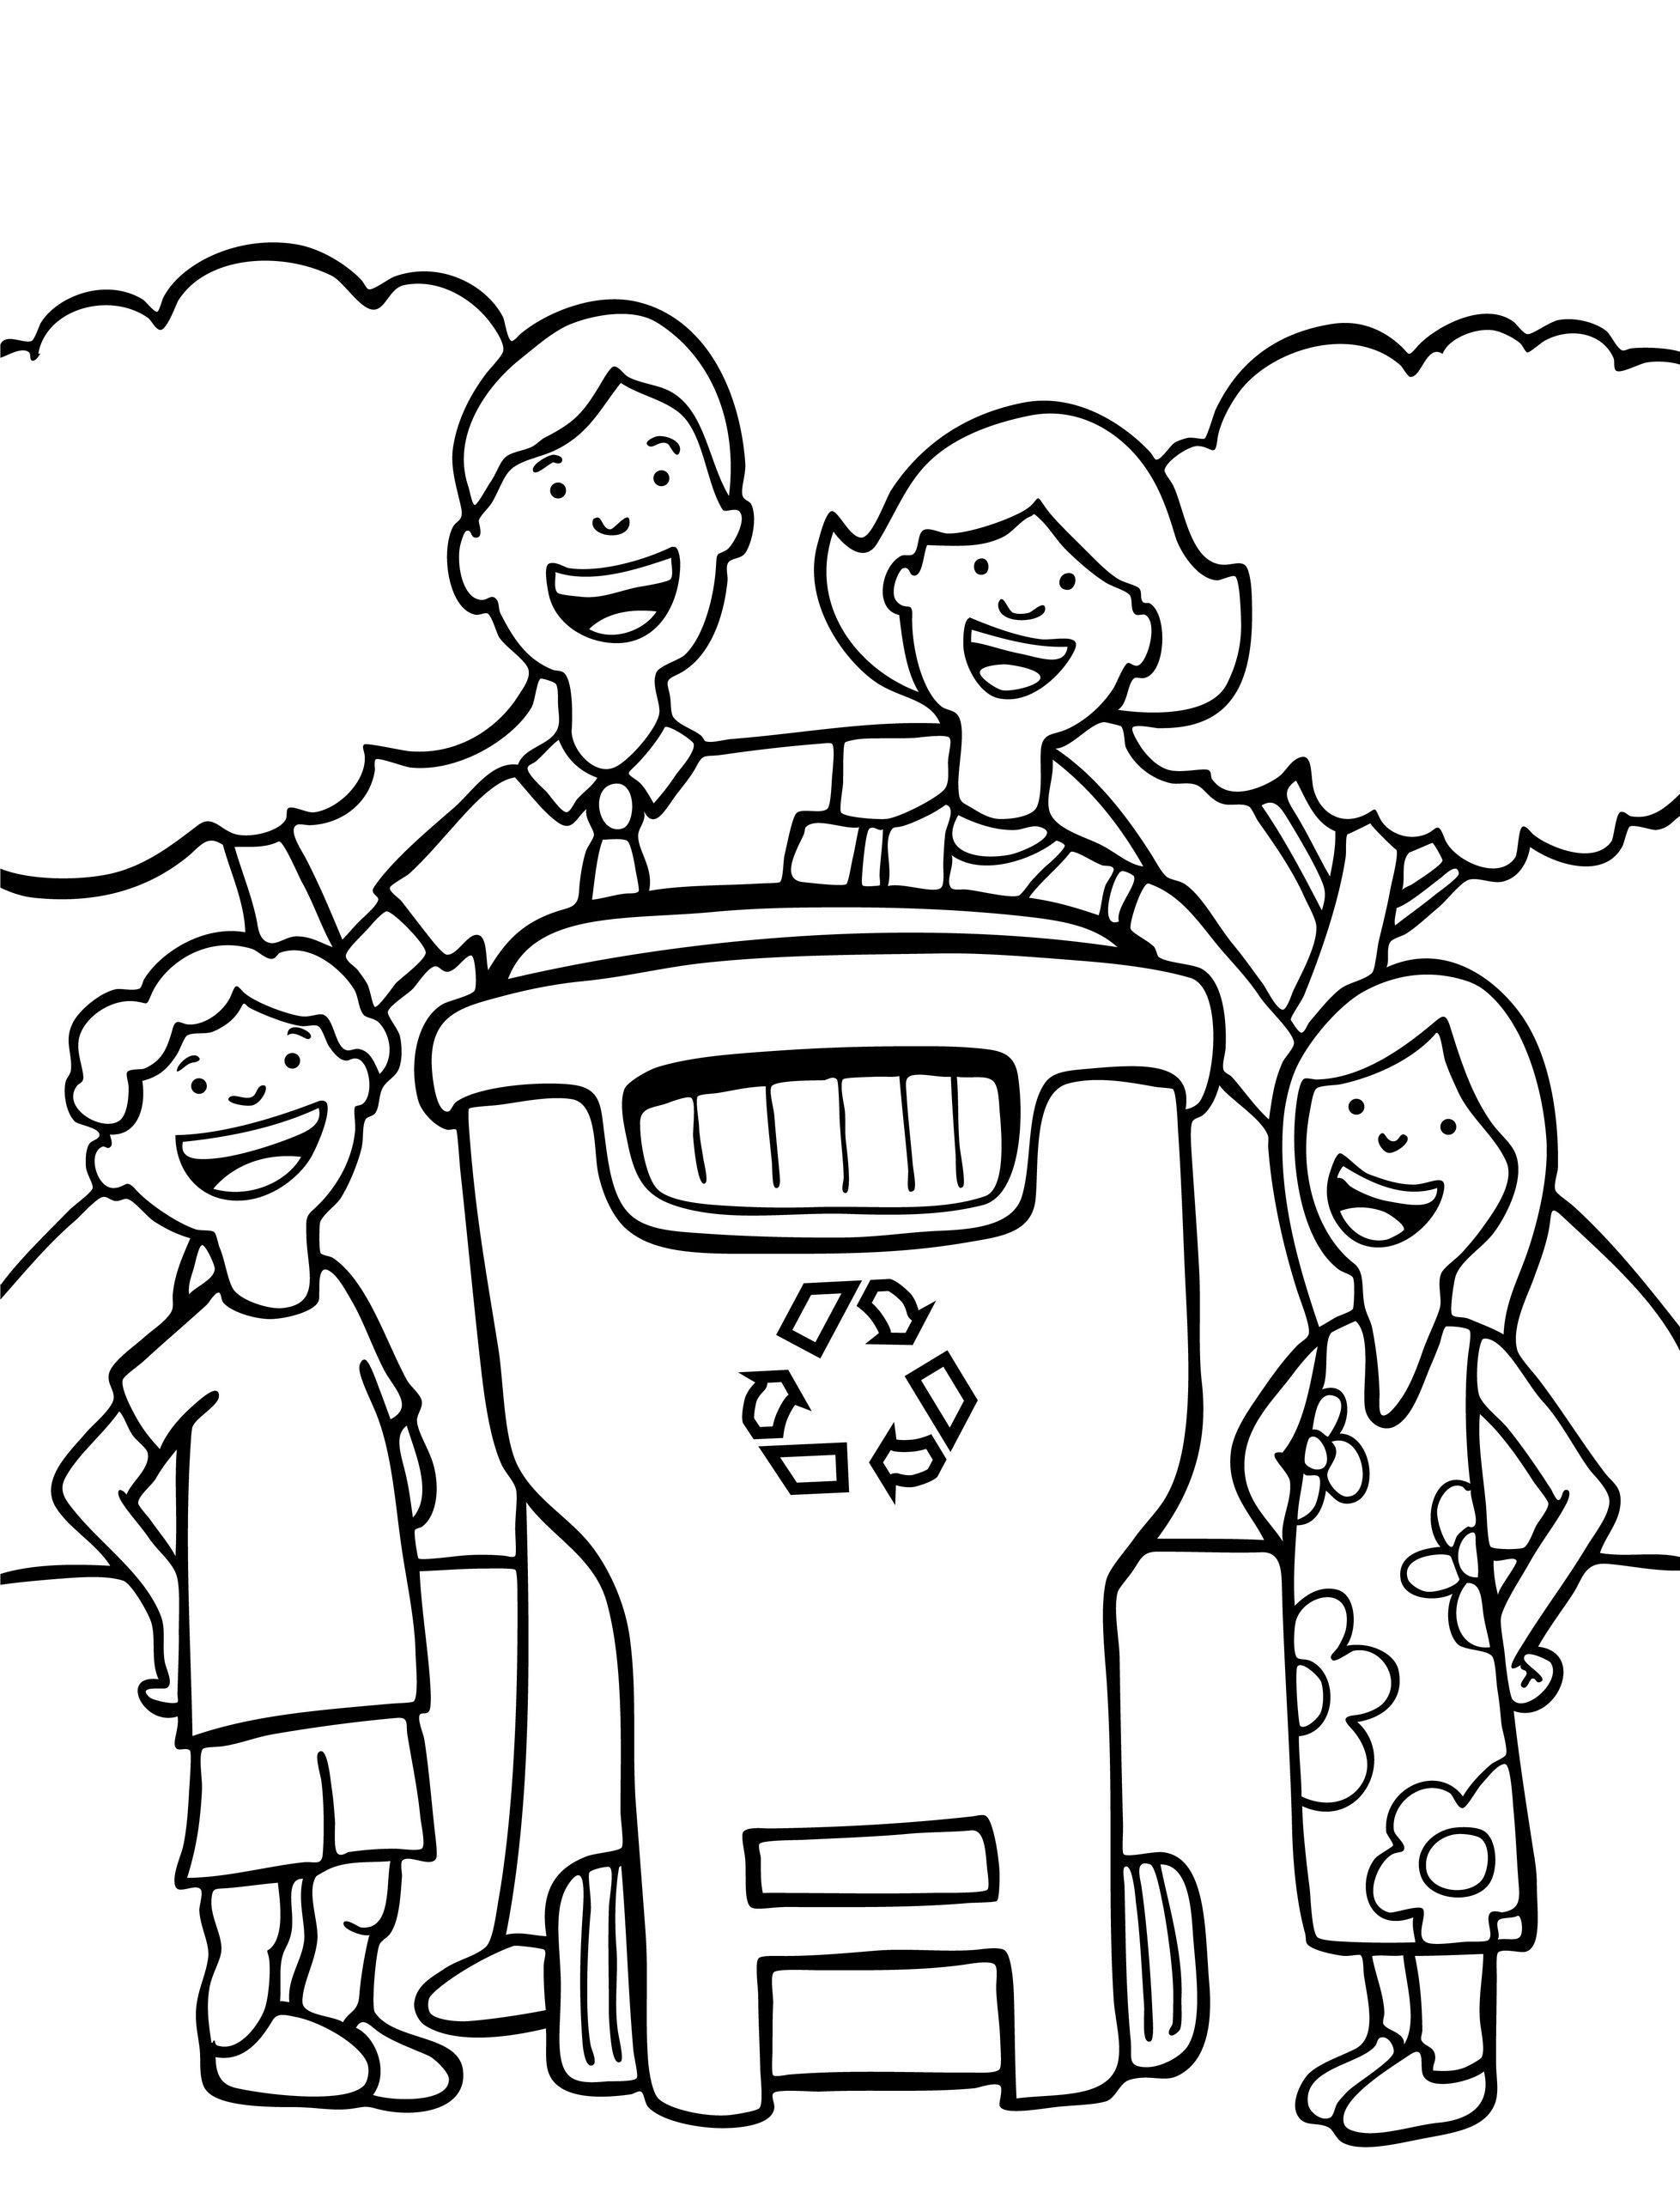 Free coloring pages earth day - Free Earth Day Coloring Page For Children Let S Recycle